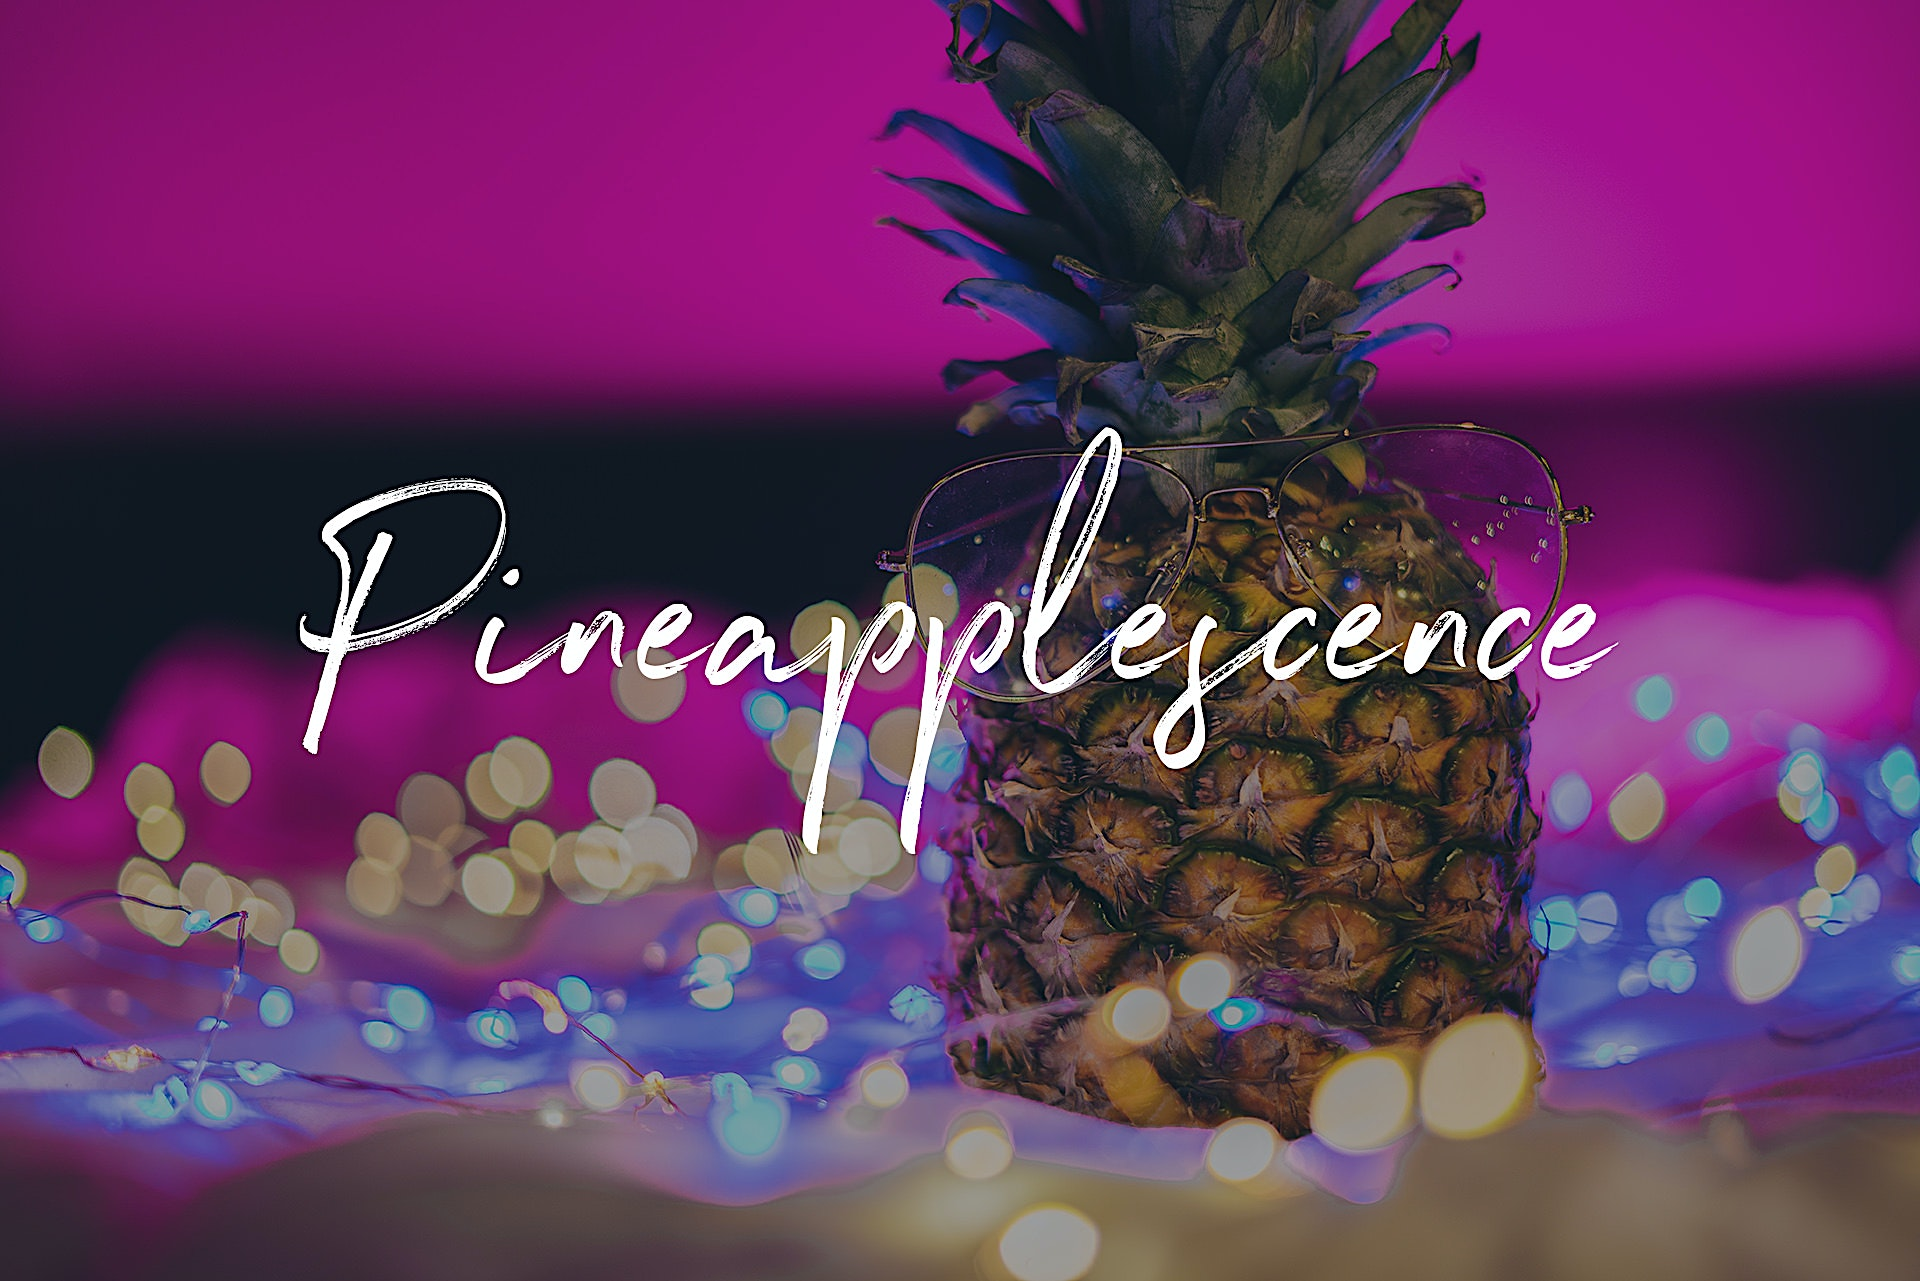 Introducing Pineapplescence! Inspired by Brandon Woelfel